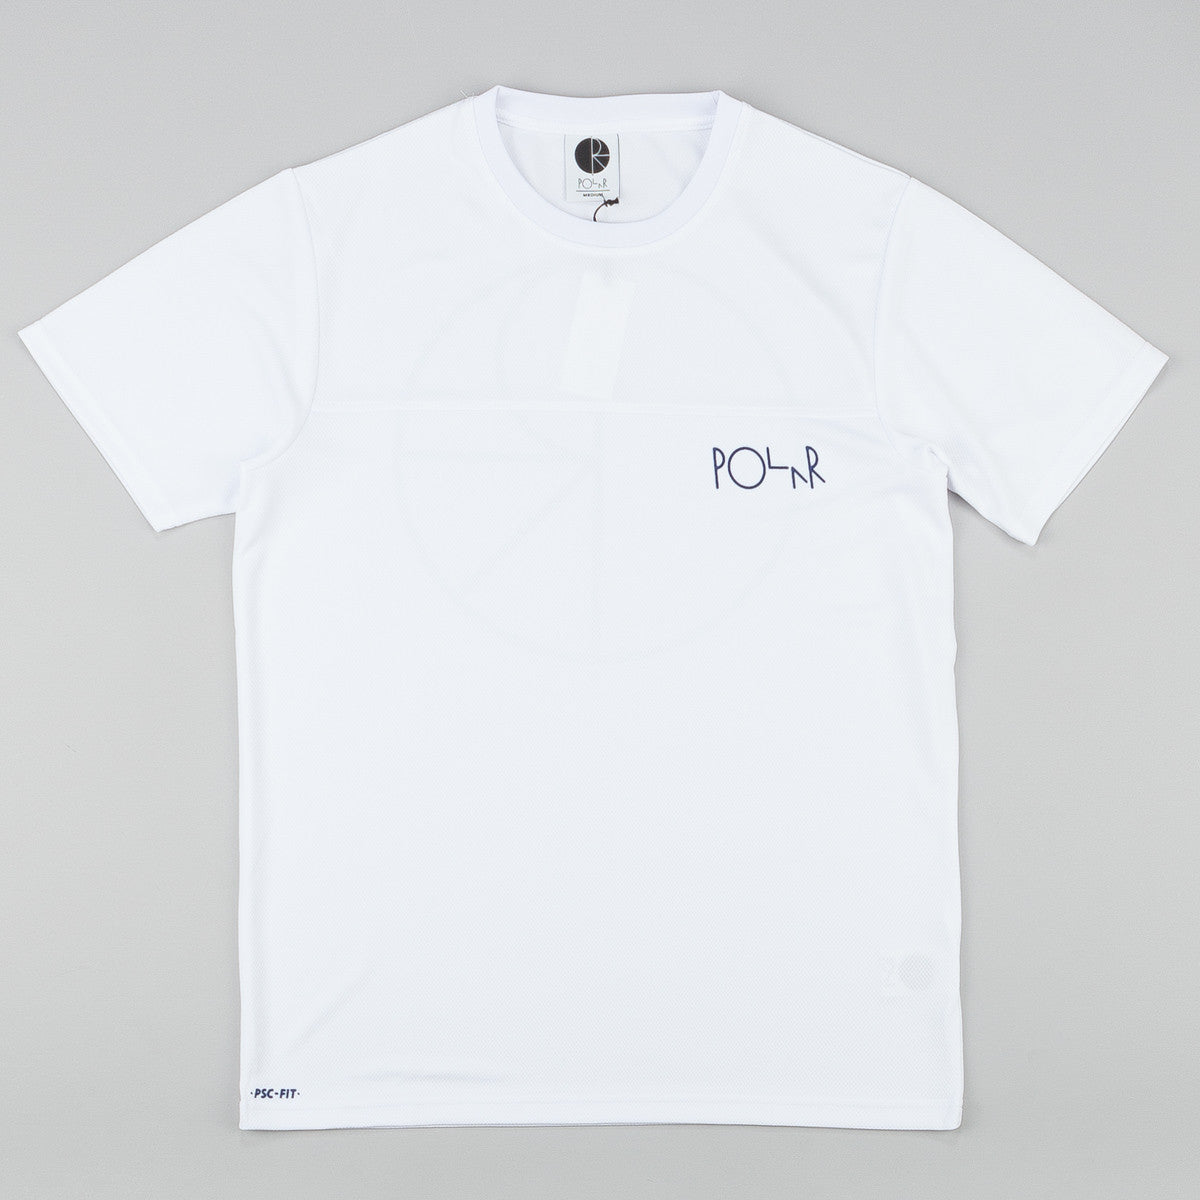 Polar Stroke Logo PSC Fit T-Shirt